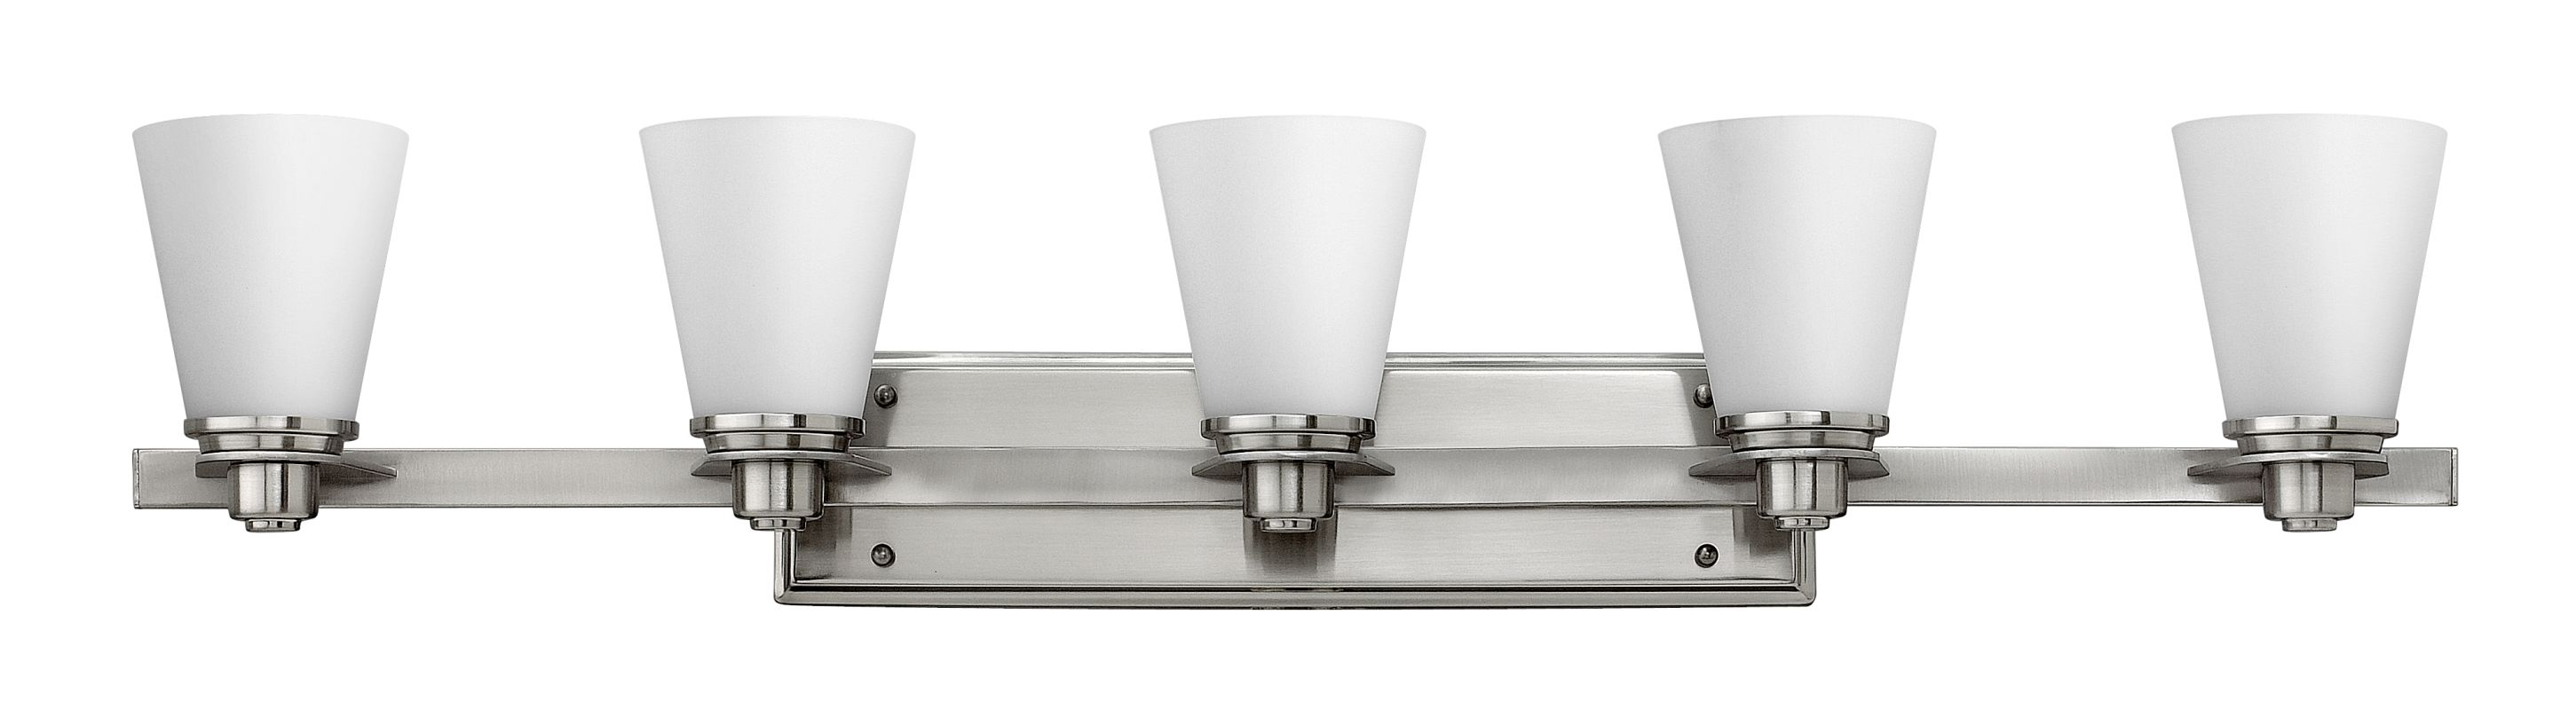 Hinkley Lighting 5555 5 Light Bathroom Vanity Light from the Avon